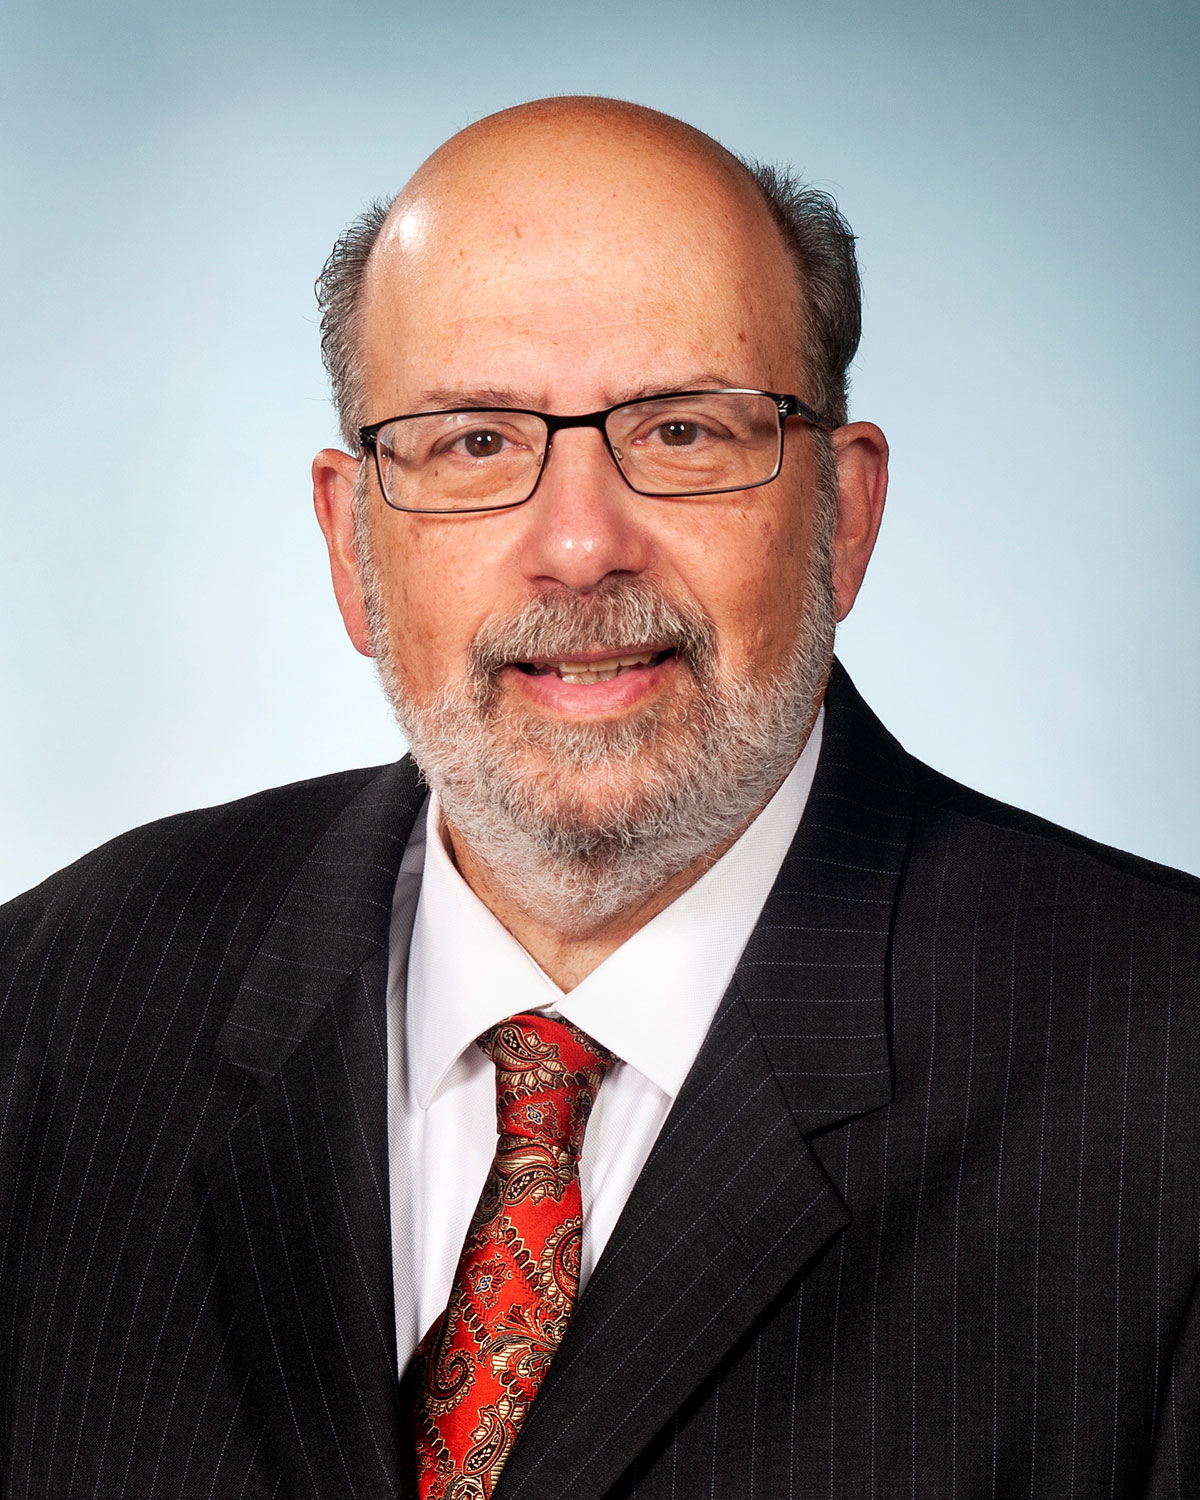 Professional headshot photograph of Robert DiTomasso, PhD, ABPP